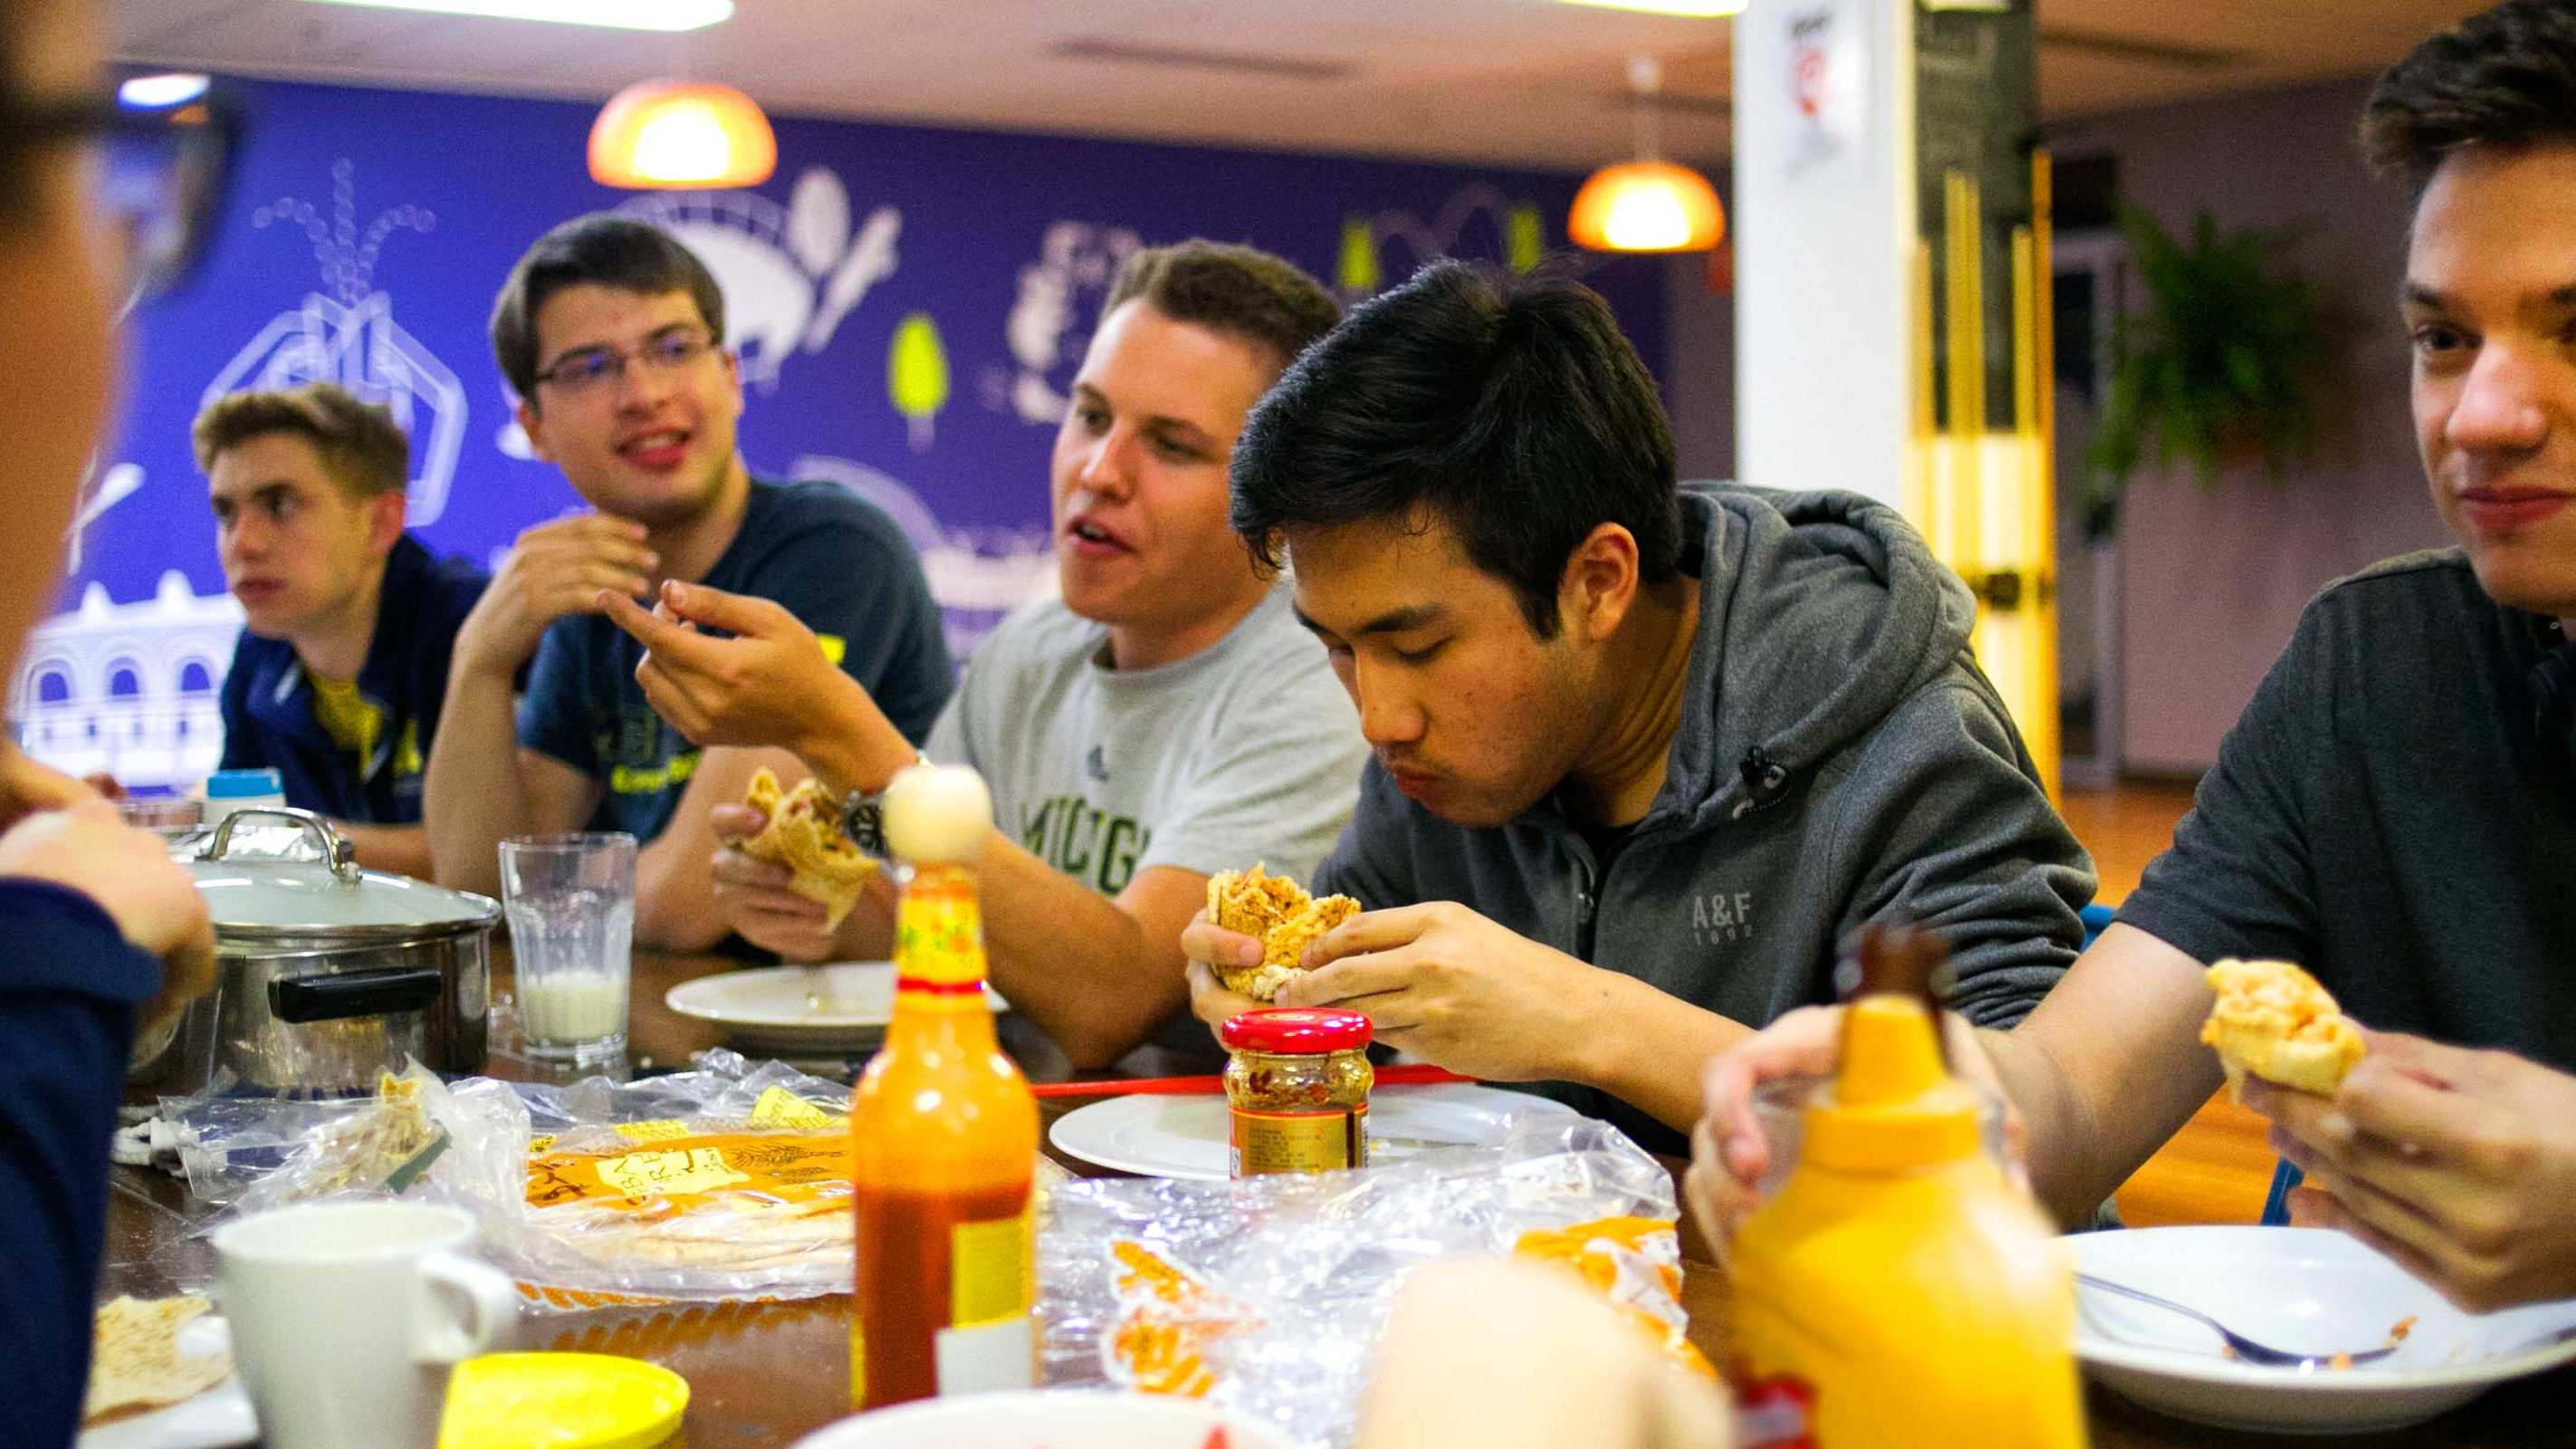 The crew sits down at the hostel dinner table to eat chicken pita wraps.